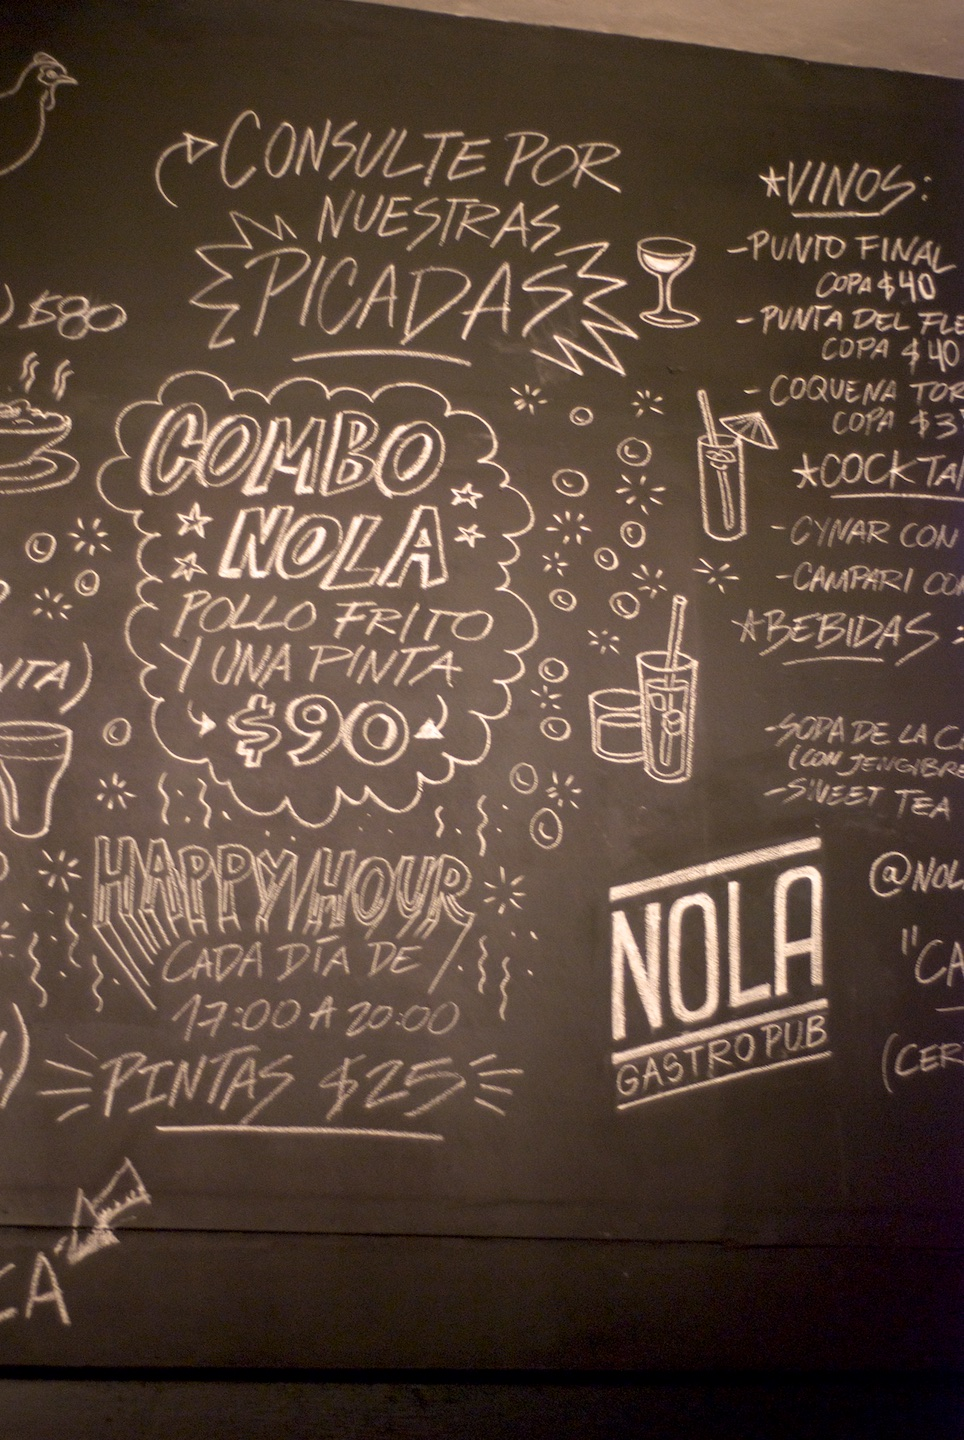 Menu chalkboard at NOLA